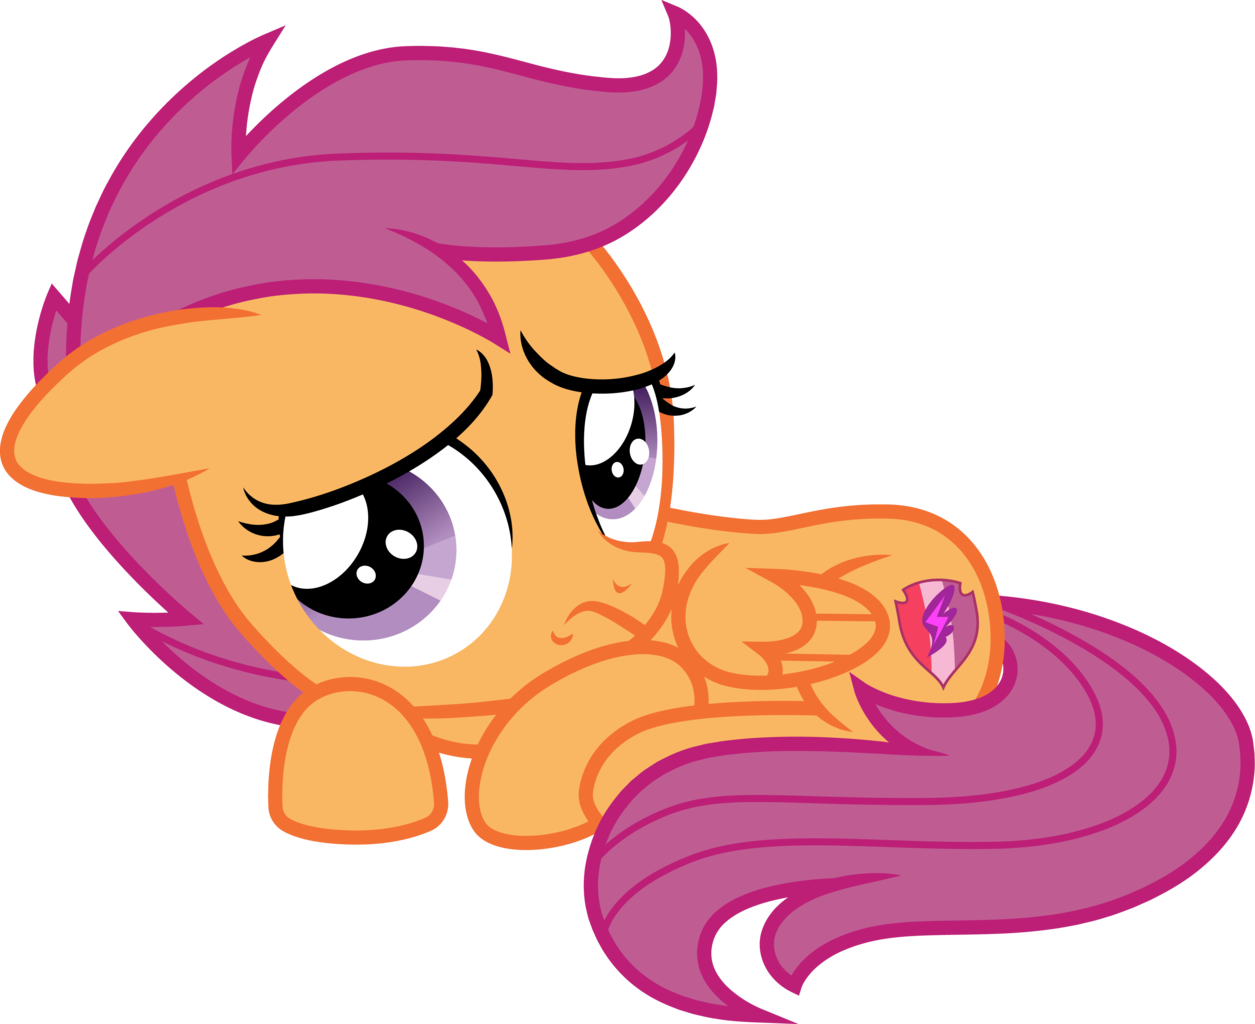 1997456 Ai Available Artist Cloudyglow Artist Parclytaxel Cowering Female Filly Pony Safe Scootal Pony My Little Pony Friendship Mlp My Little Pony An older, mellower scootaloo relocates to the crystal empire, tasked with tutoring a jumpy junior princess. pony my little pony friendship mlp